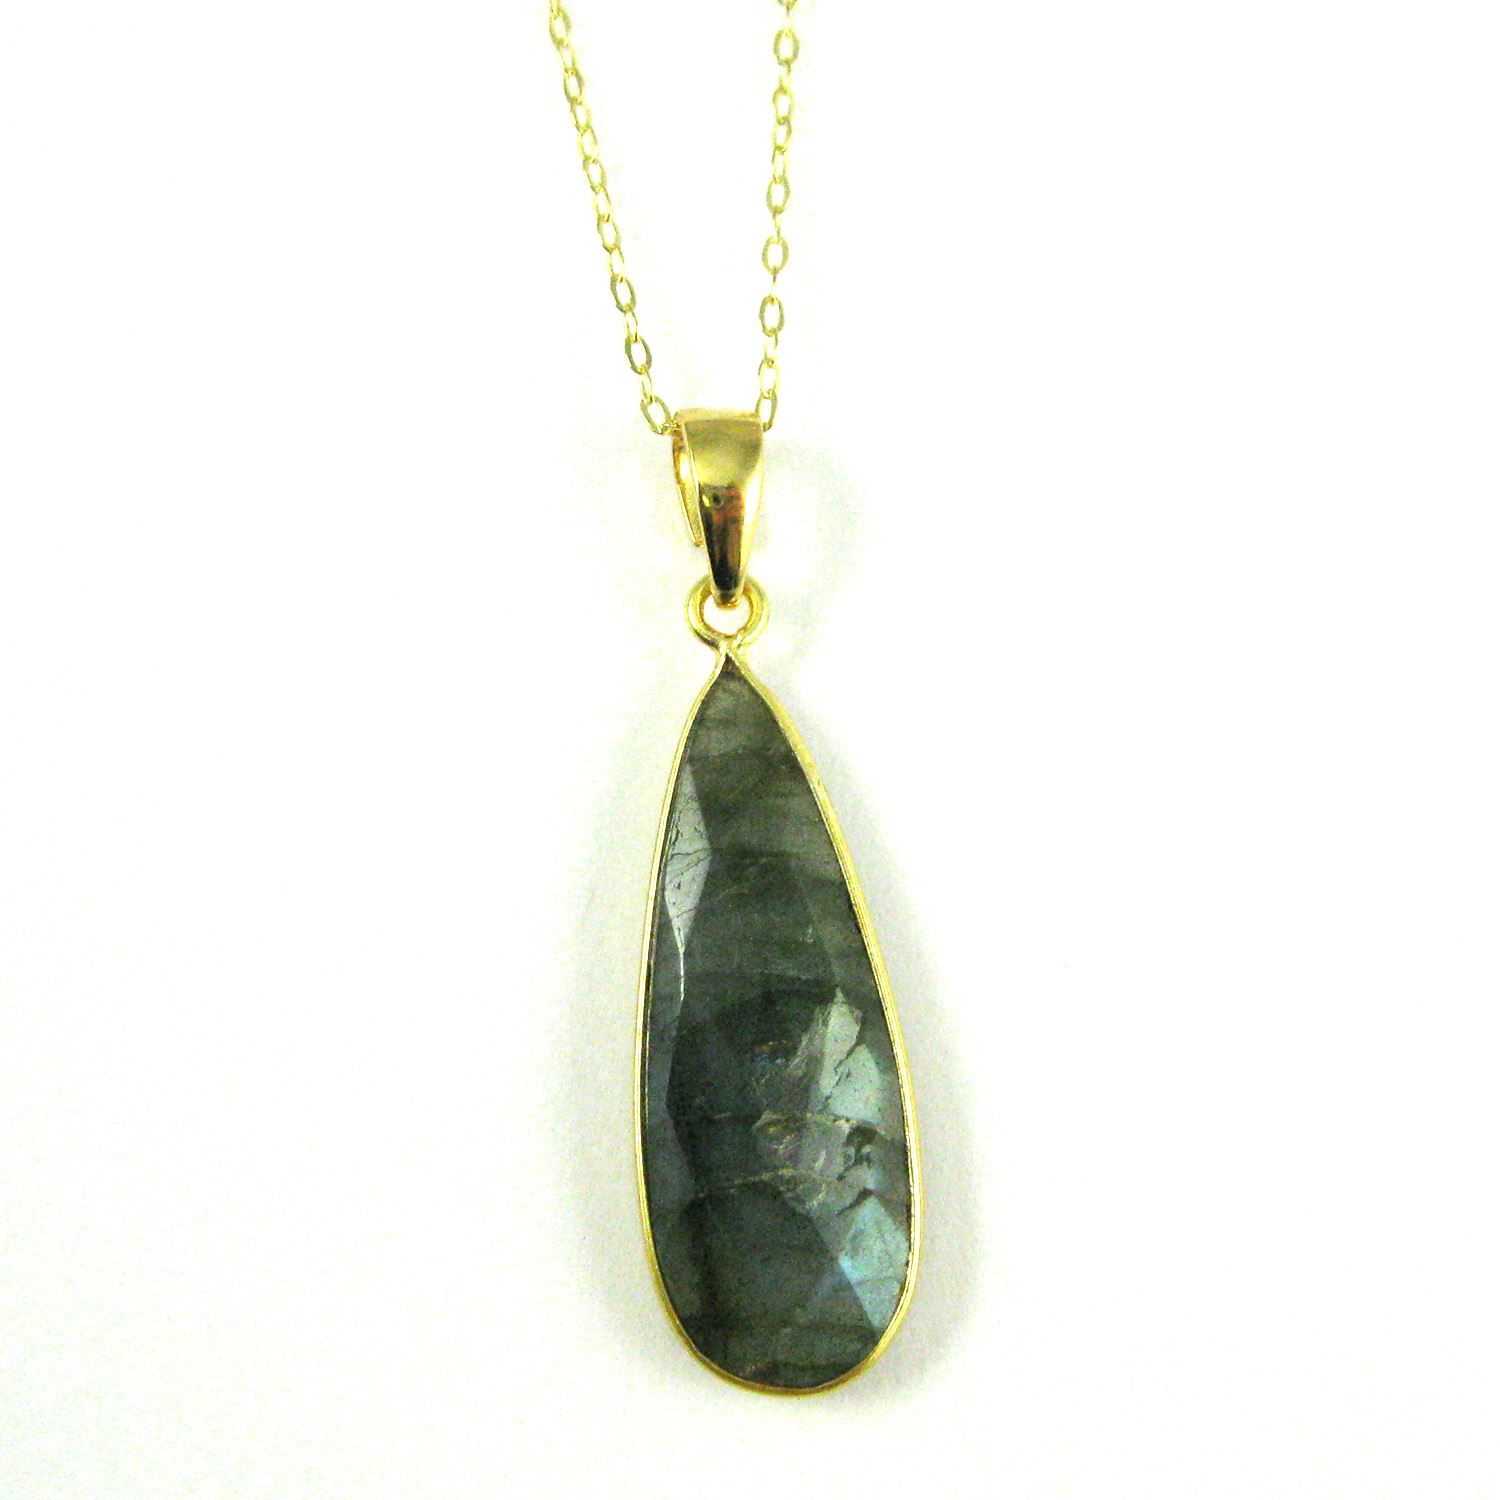 Bezel Gemstone Pendant with Bail - Gold plated Sterling Silver Elongated Teardrpo Gem Pendant - Ready for Necklace - 40mm - Labradorite